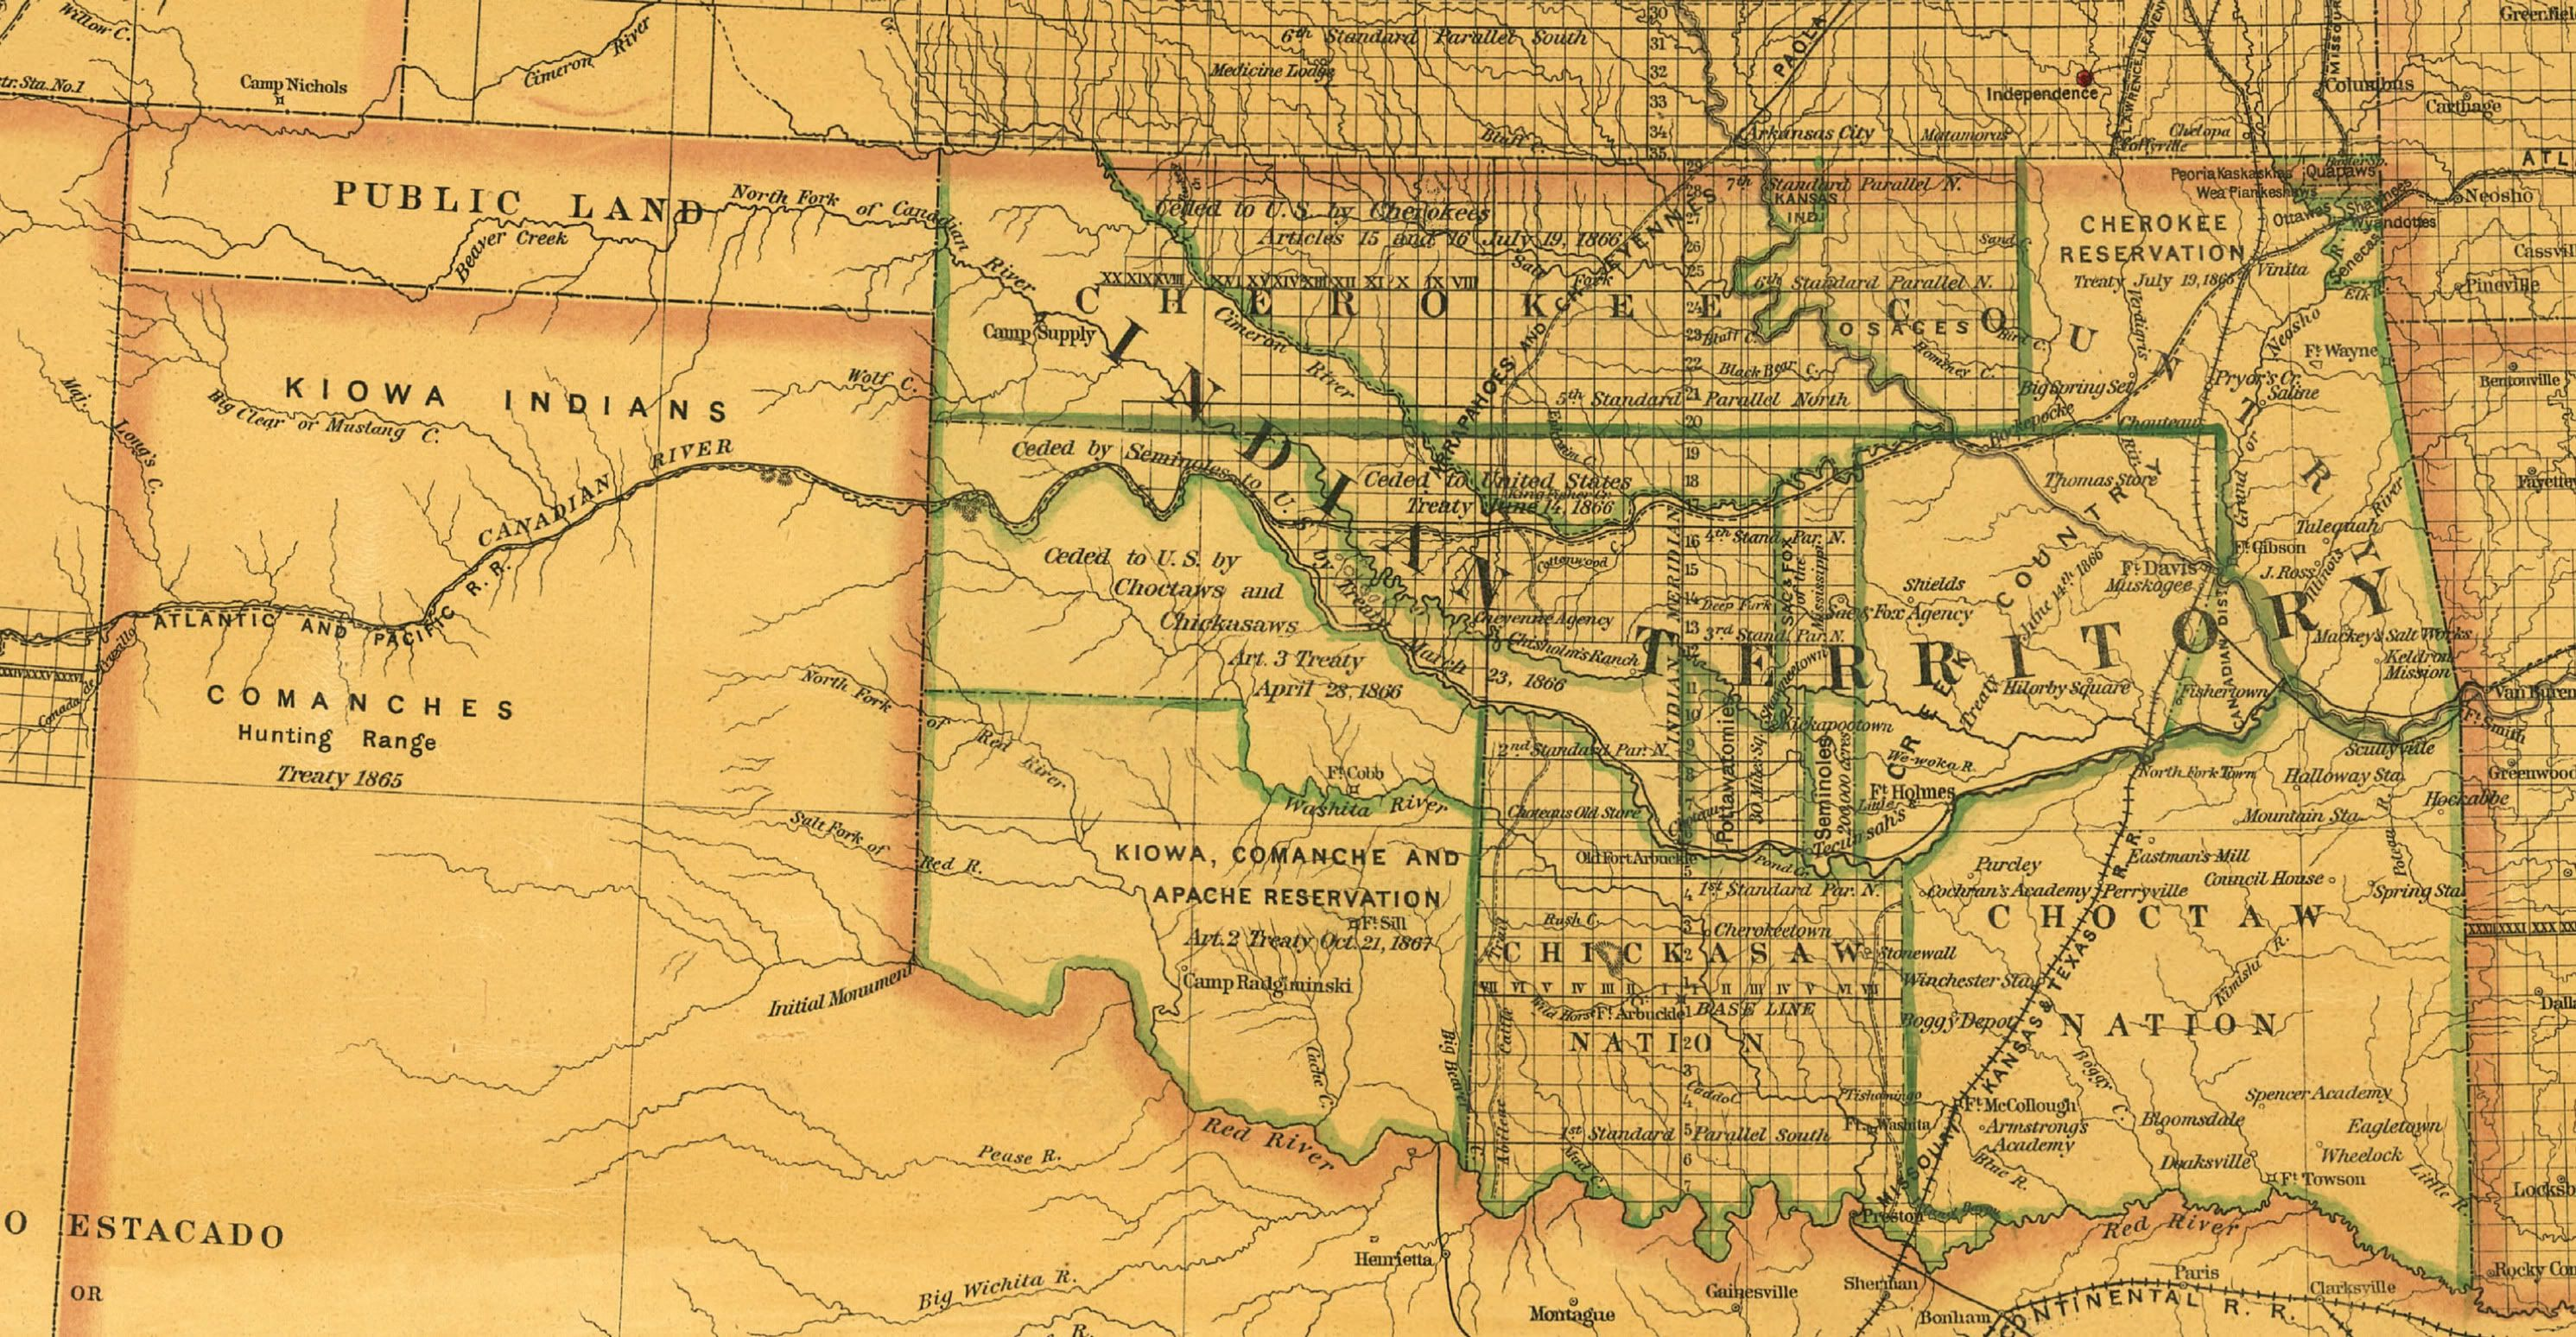 Maps and History of Oklahoma 18301900 Oklahoma Pinterest